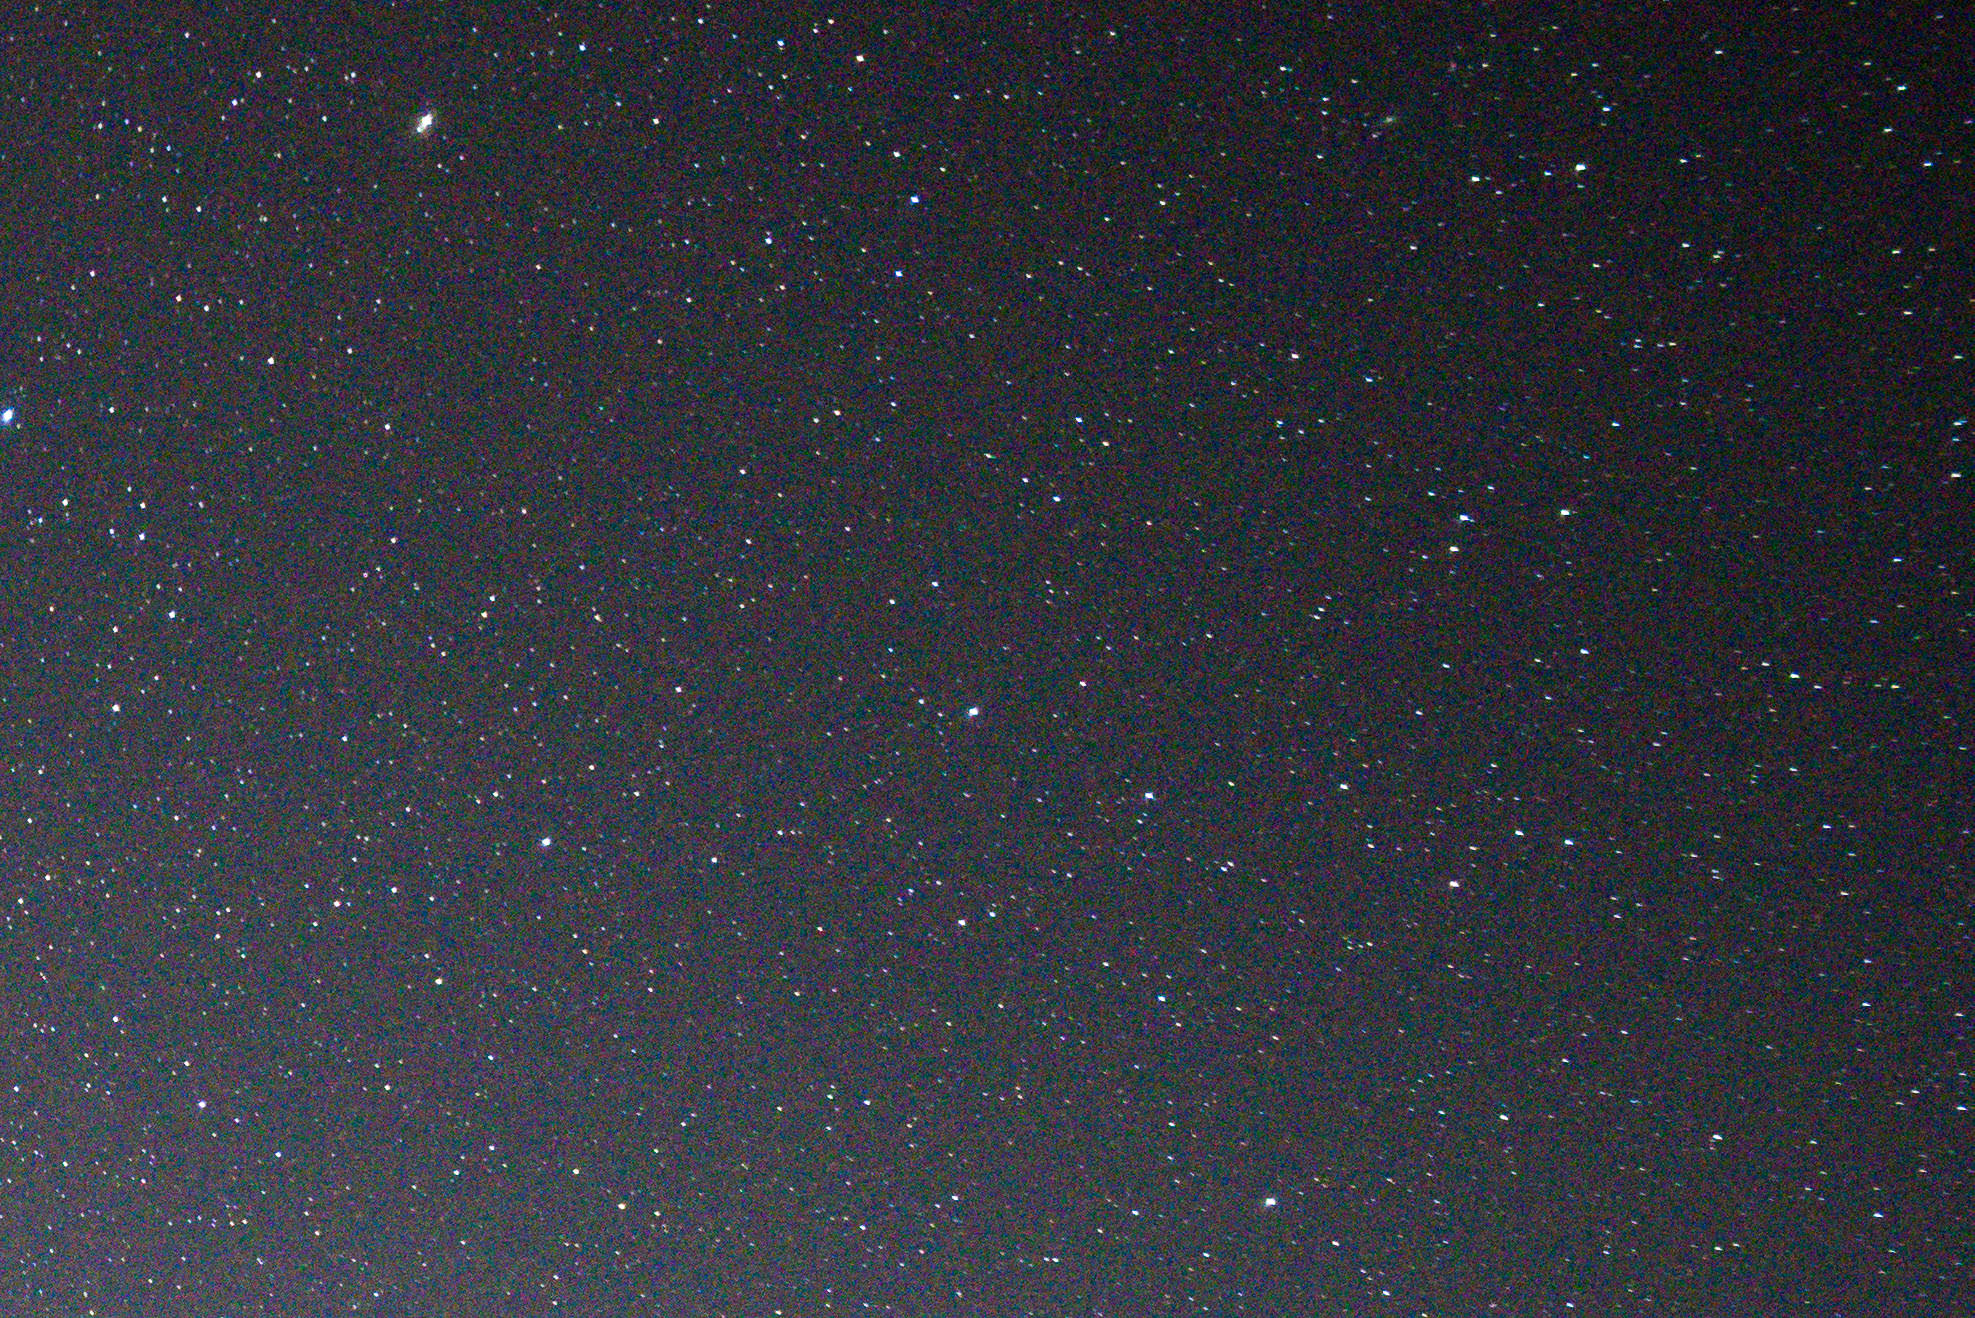 Comparing 5 Top Wide-Angle Astrophotography Lenses